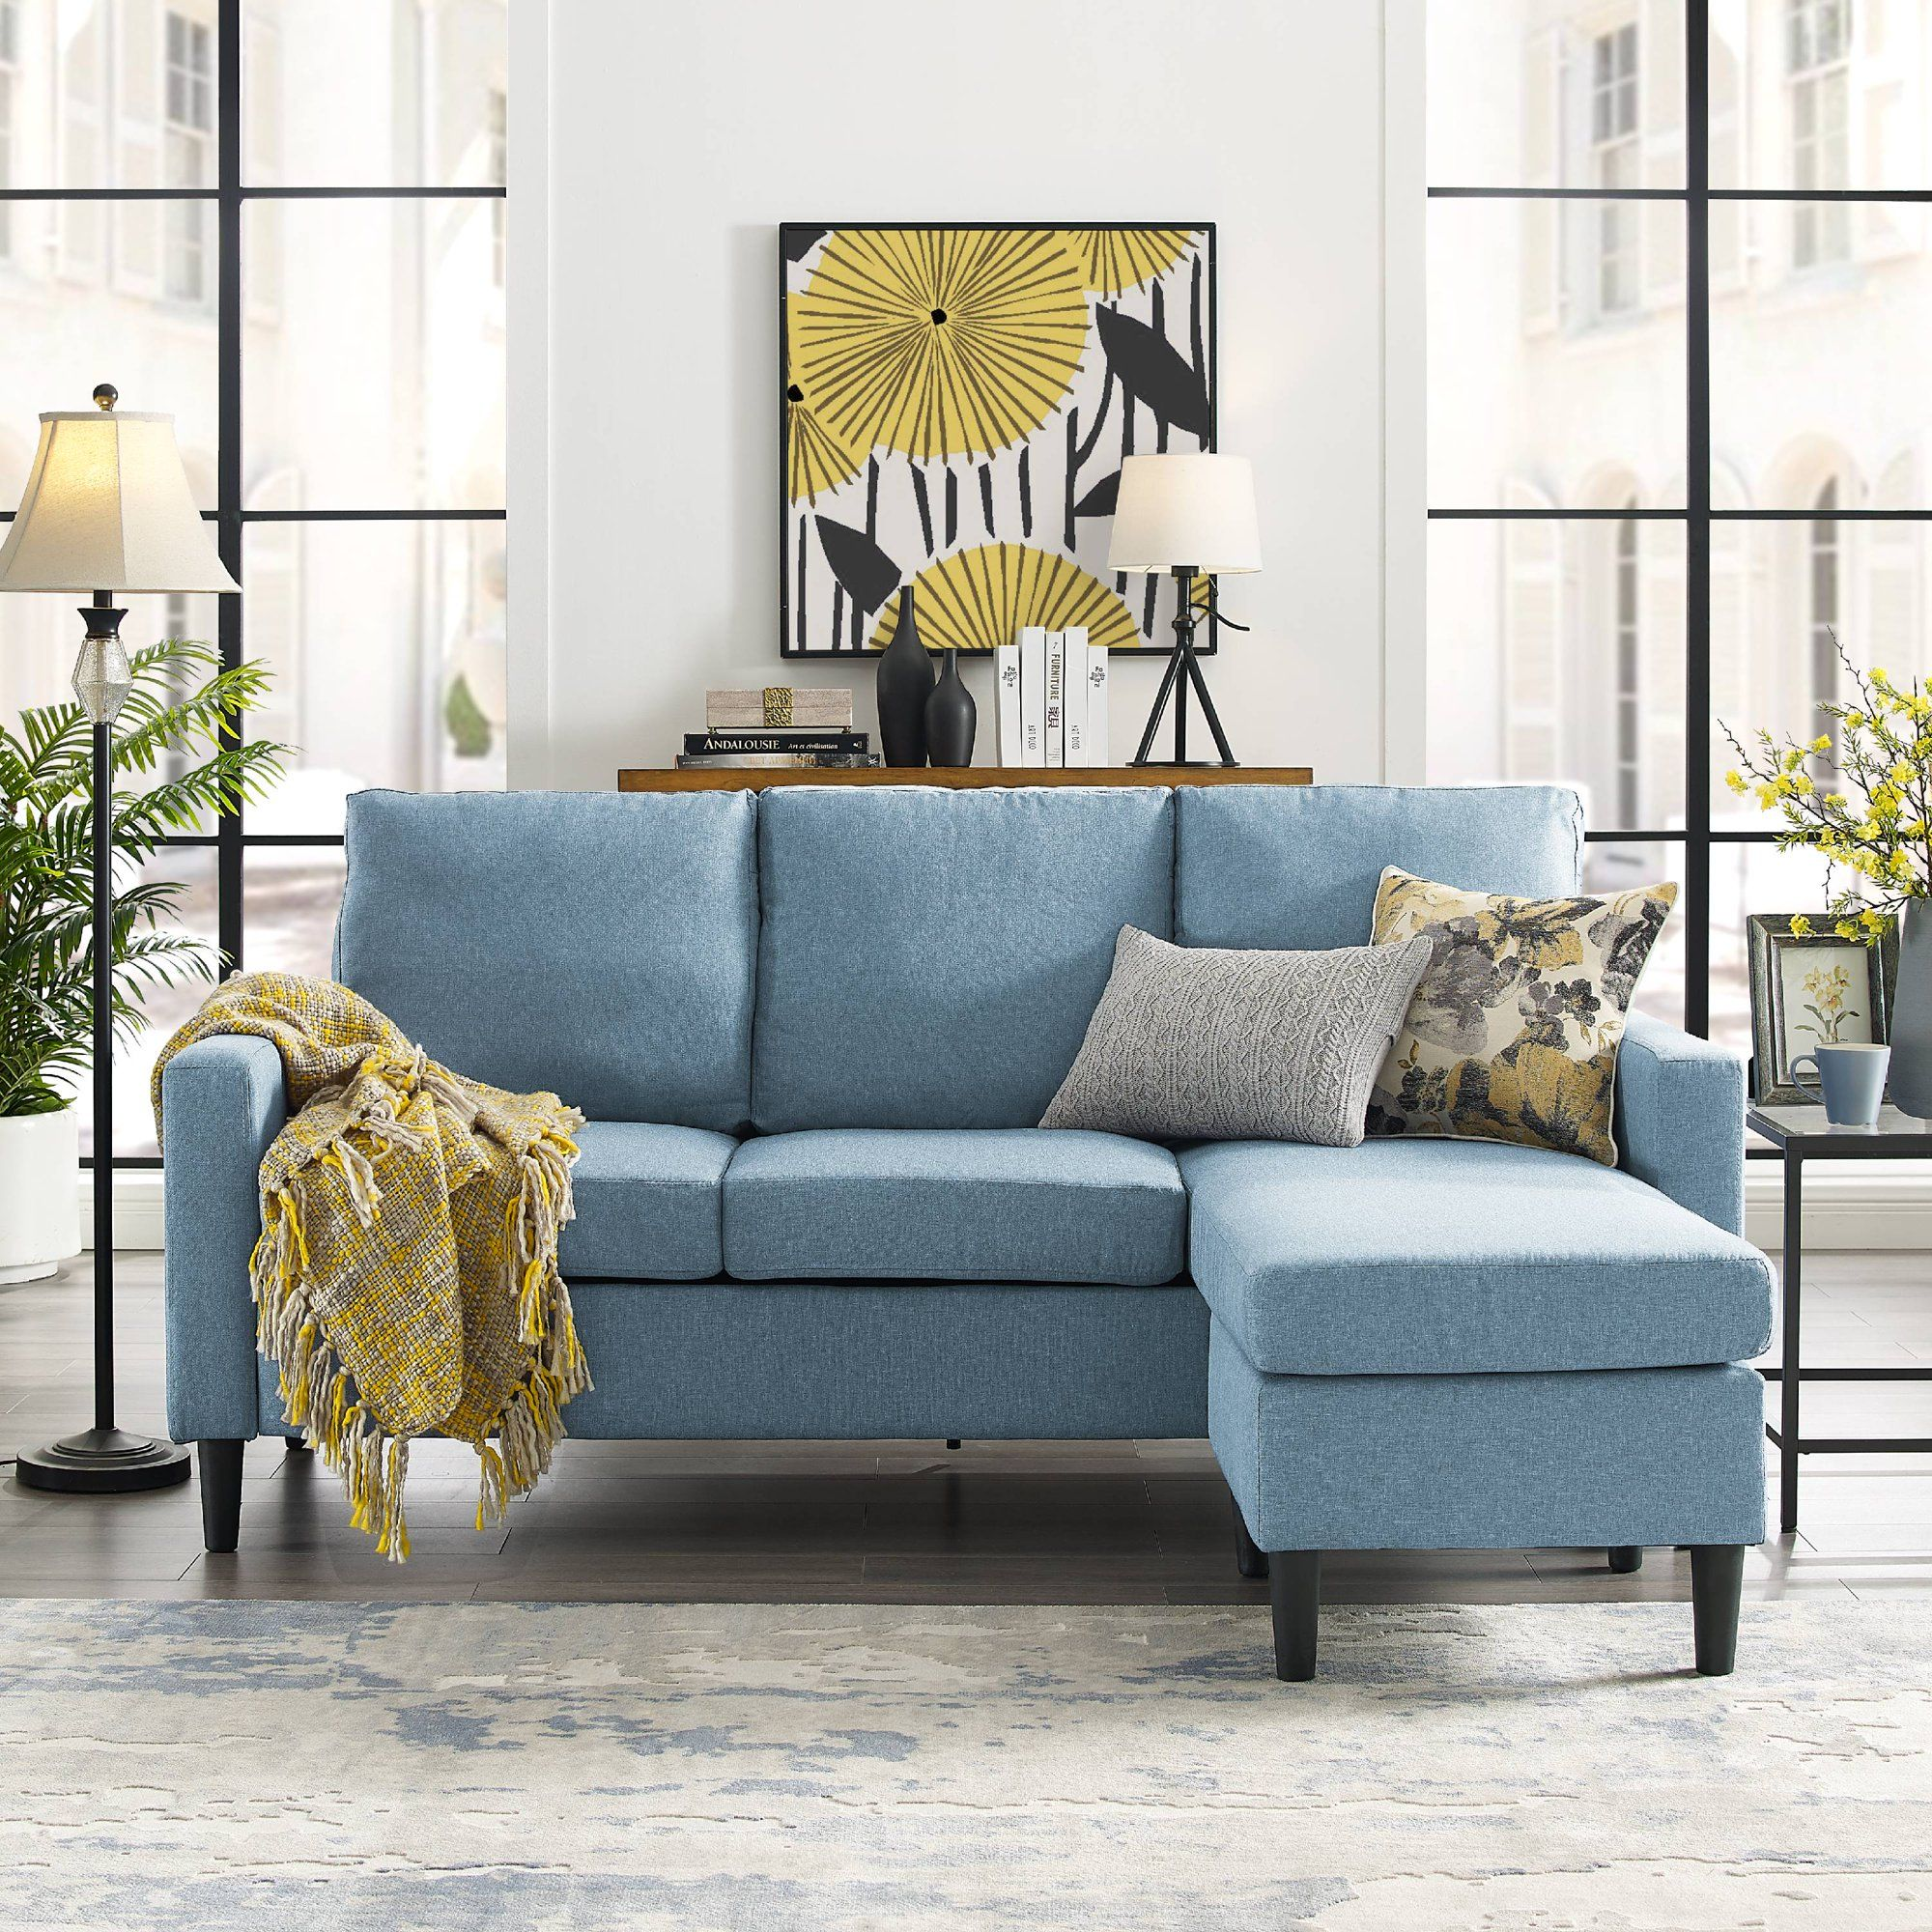 Mainstays Upholstered Apartment Reversible Sectional Multiple Colors Walmart Com Light Blue Couches Sectional Upholster